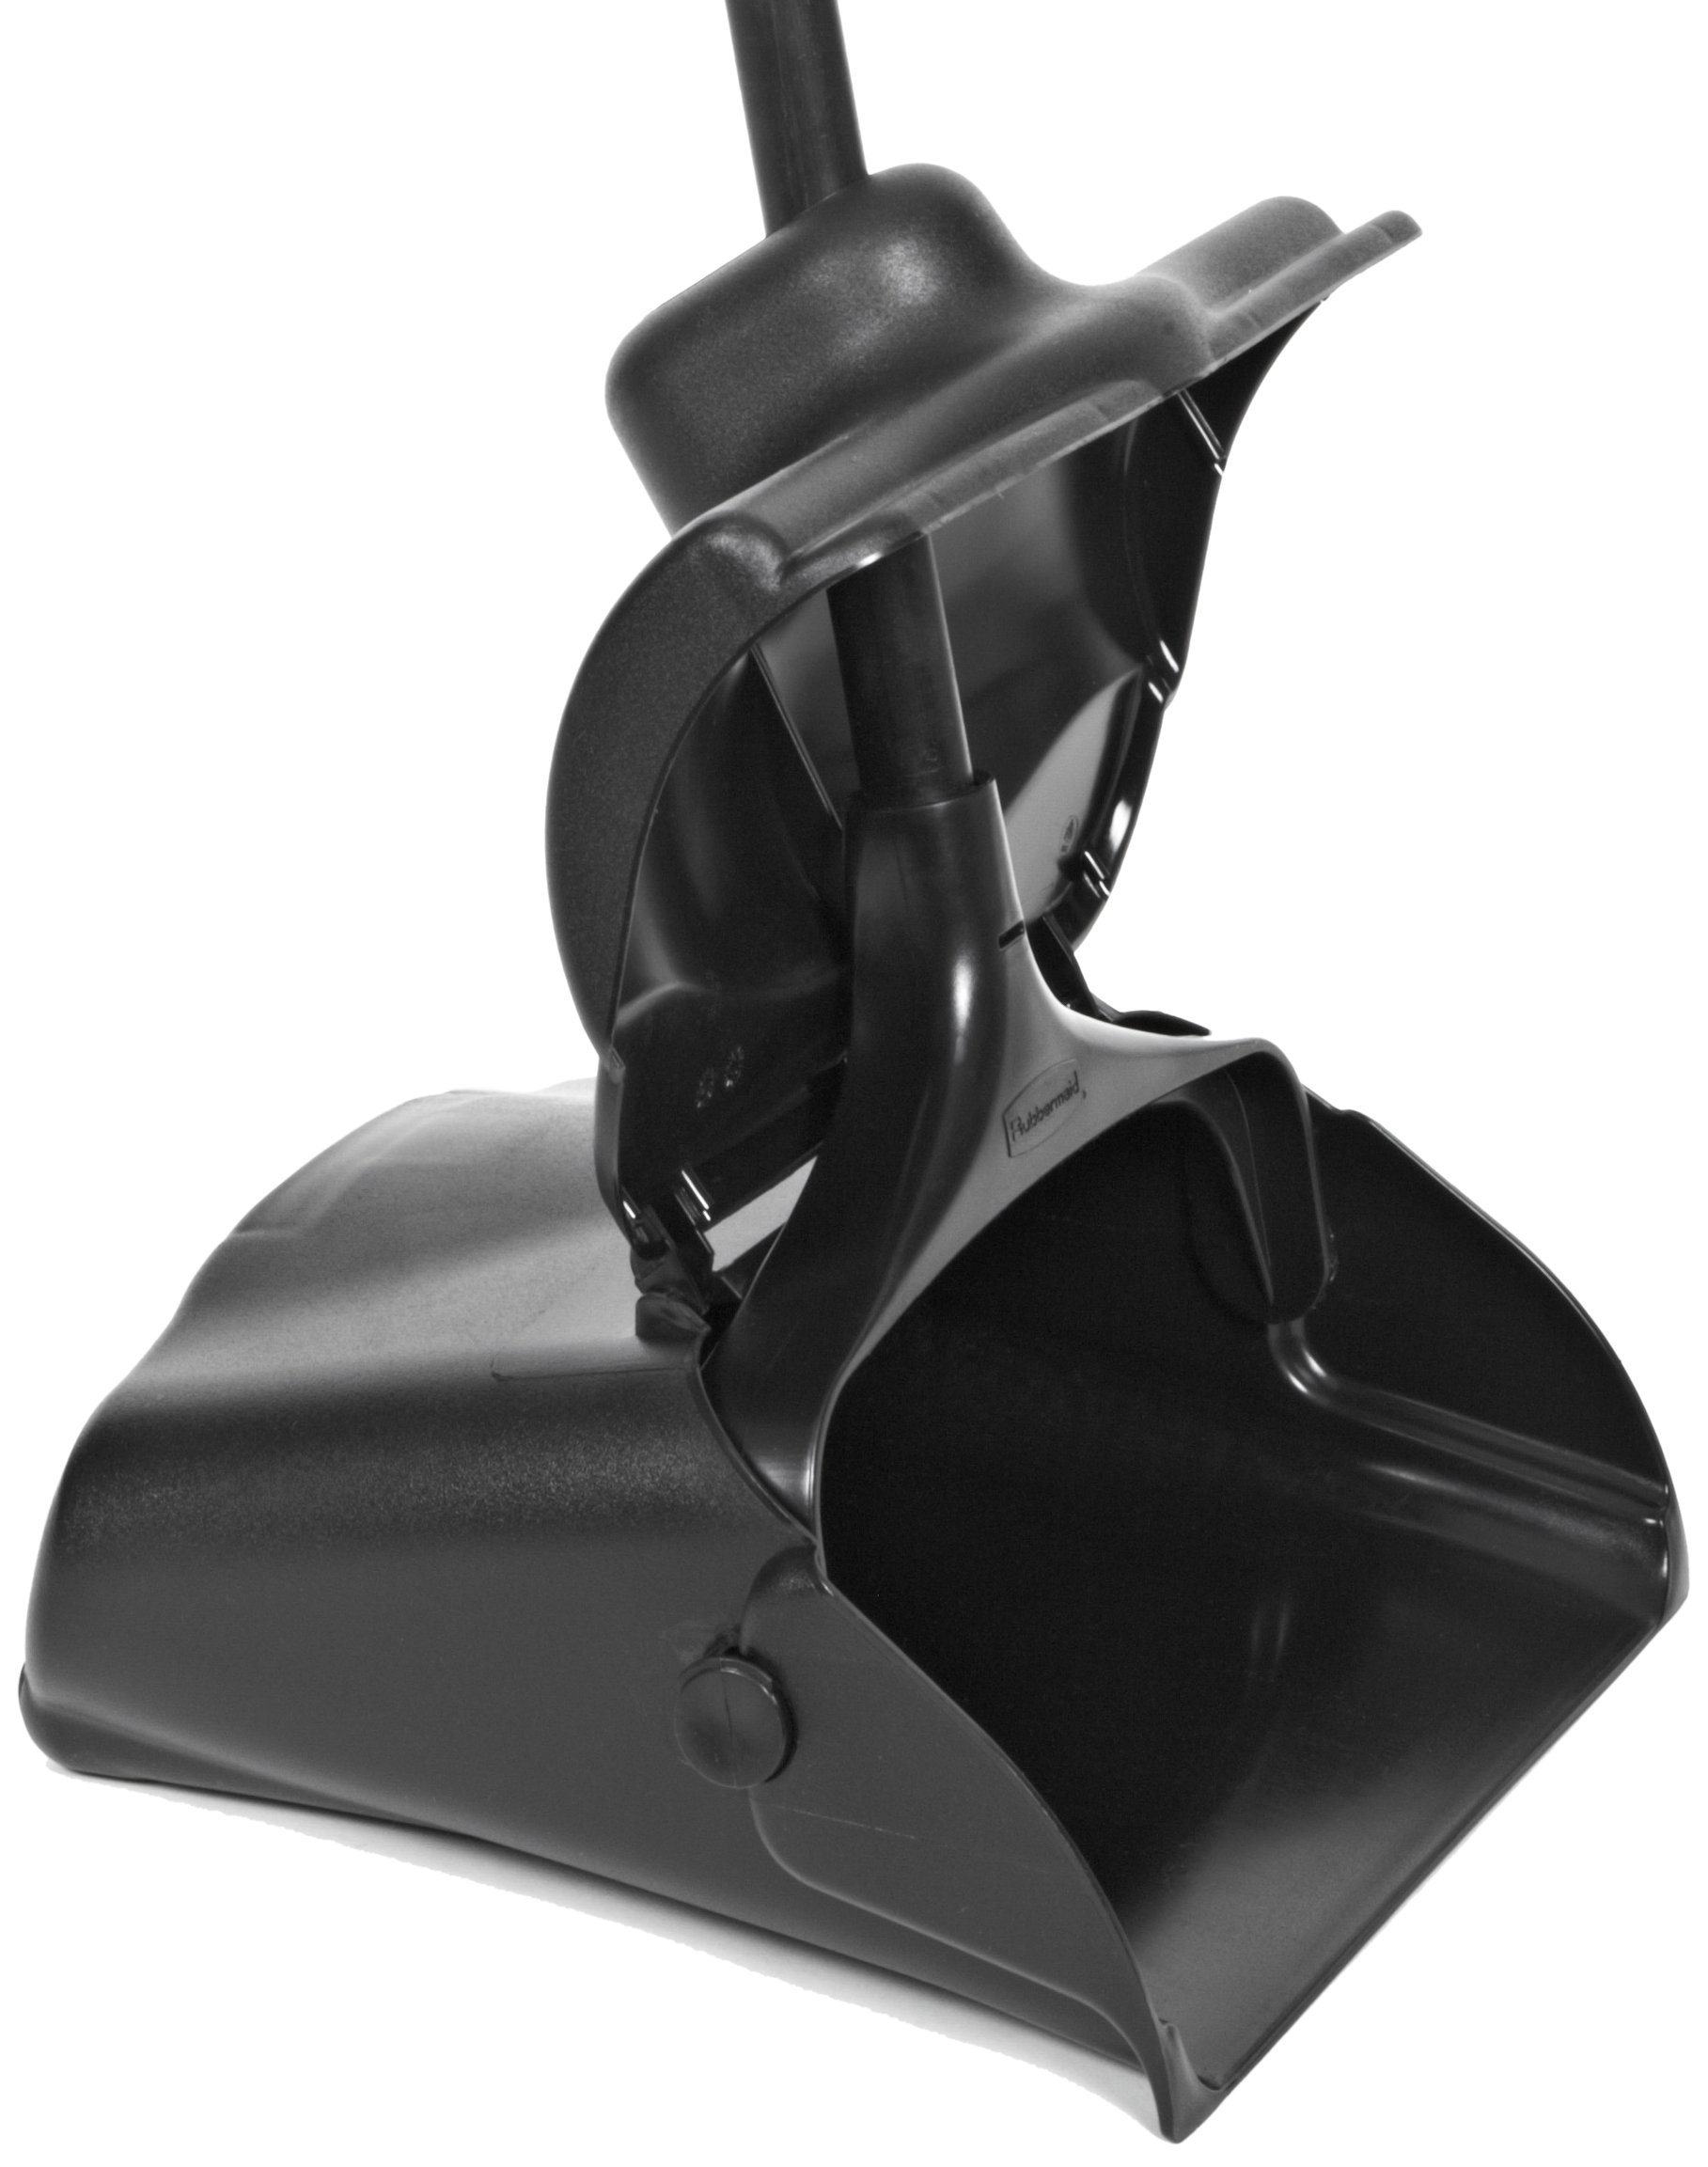 Rubbermaid Commercial Lobby Pro Deluxe Upright Dust Pan, Black, FG253300BLA